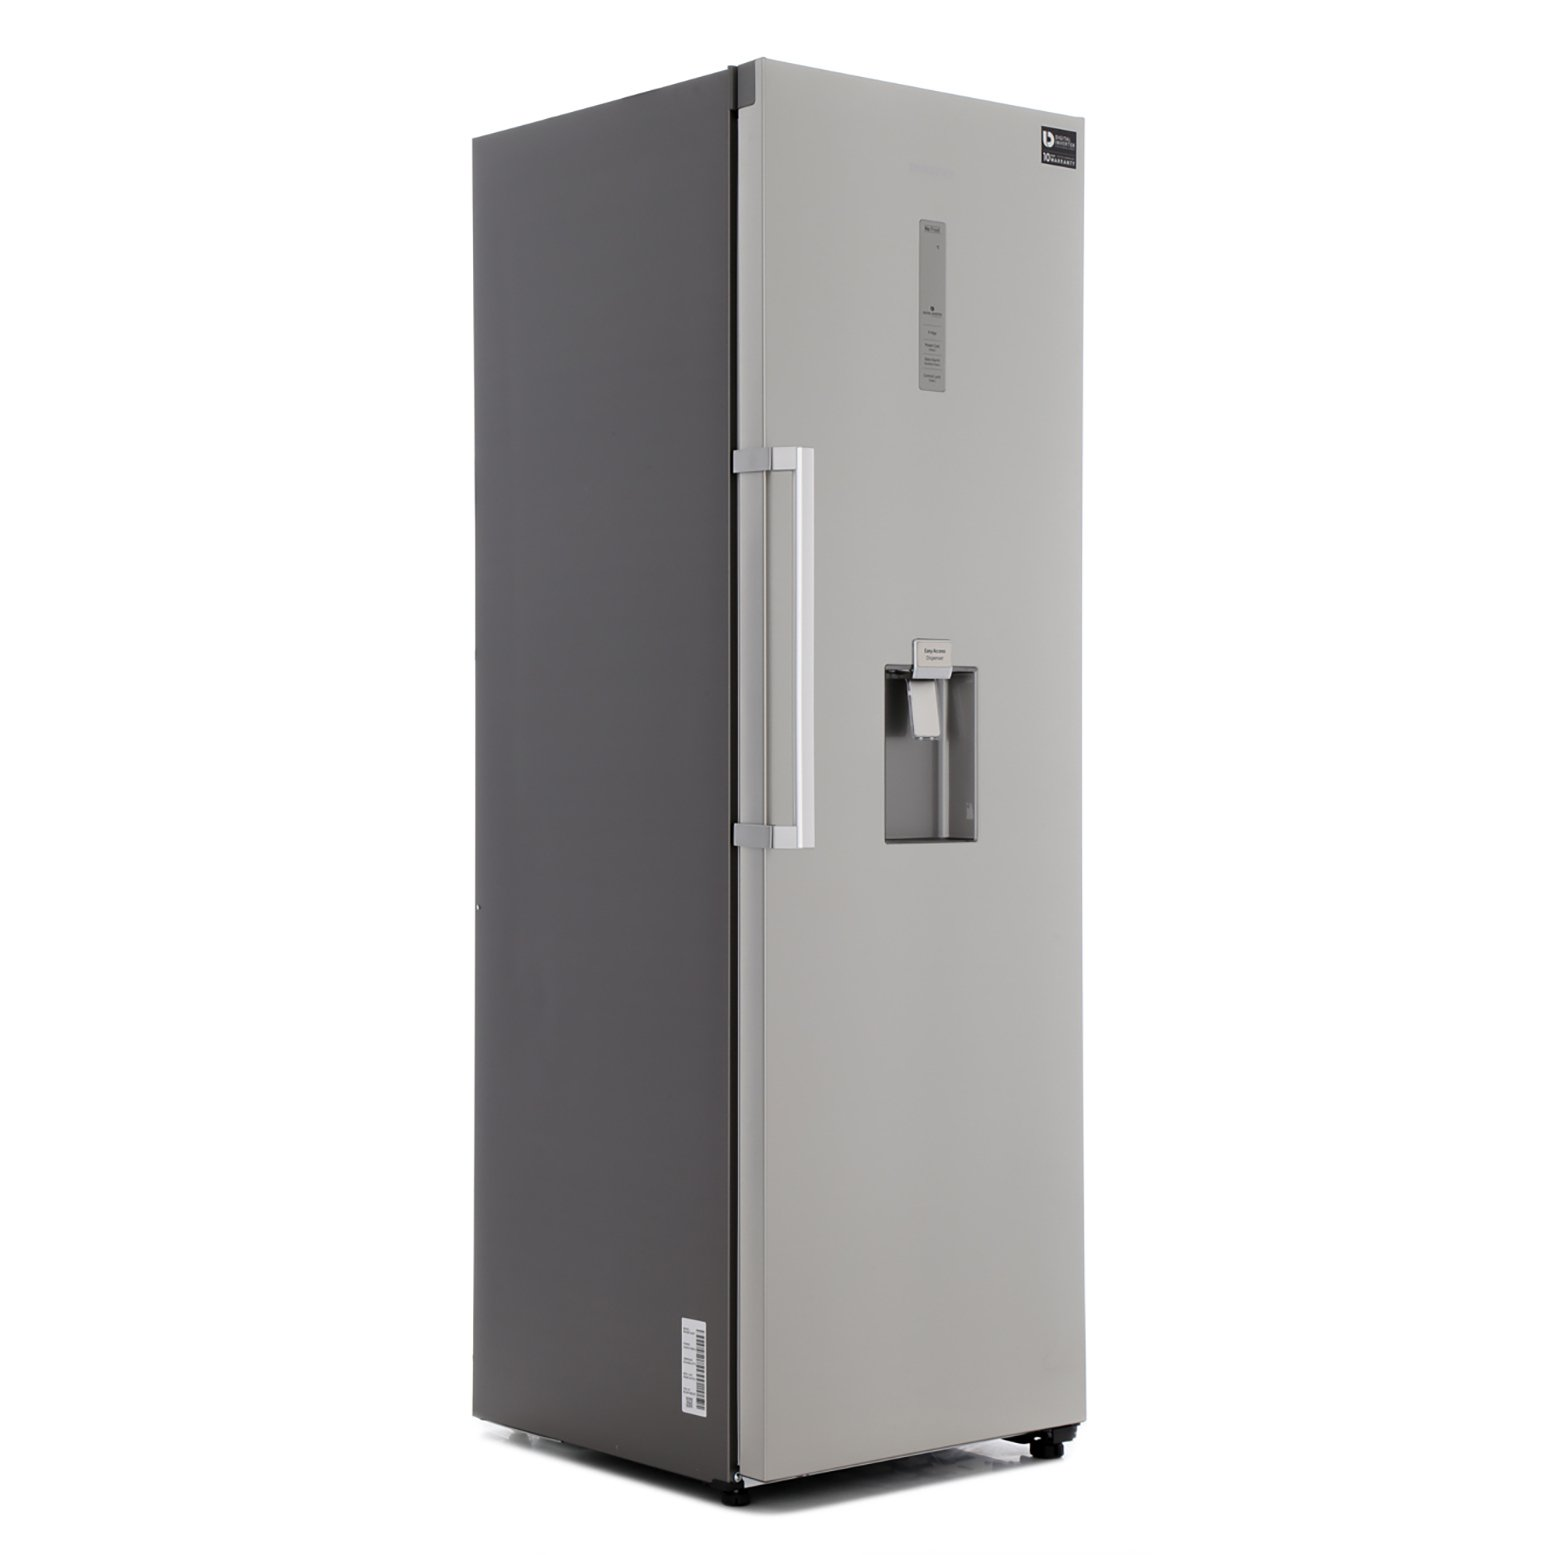 Samsung RR39M73407F/EU Tall Larder Fridge w/ All-Around Cooling